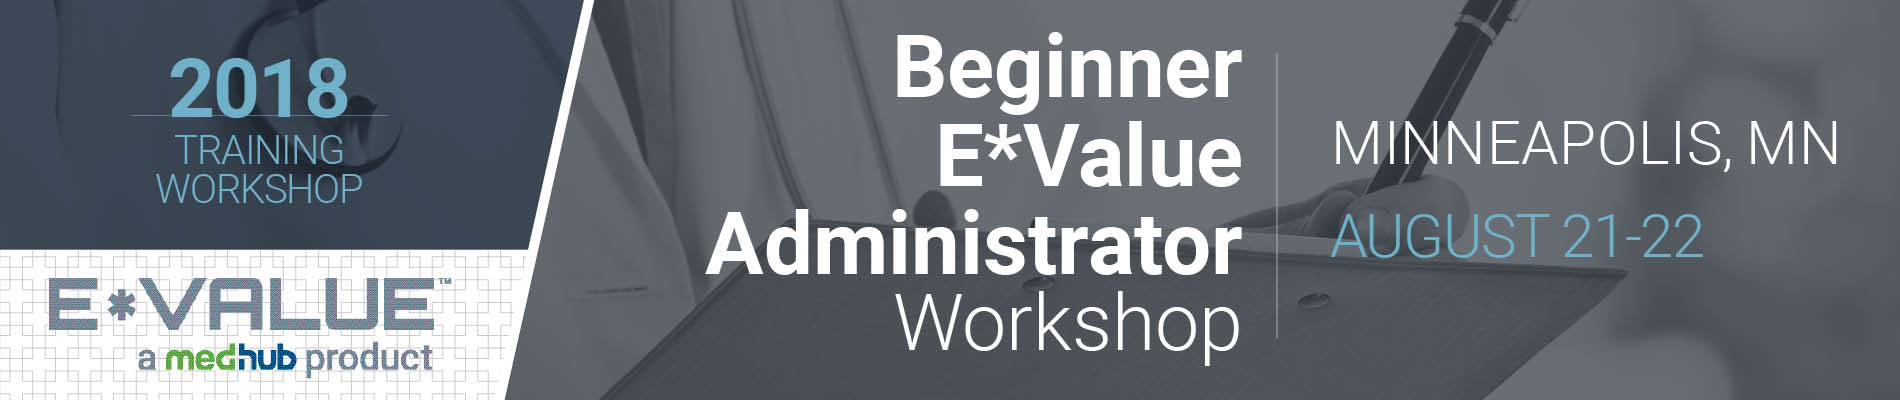 E*Value New Administrator Workshop (August 21-22)